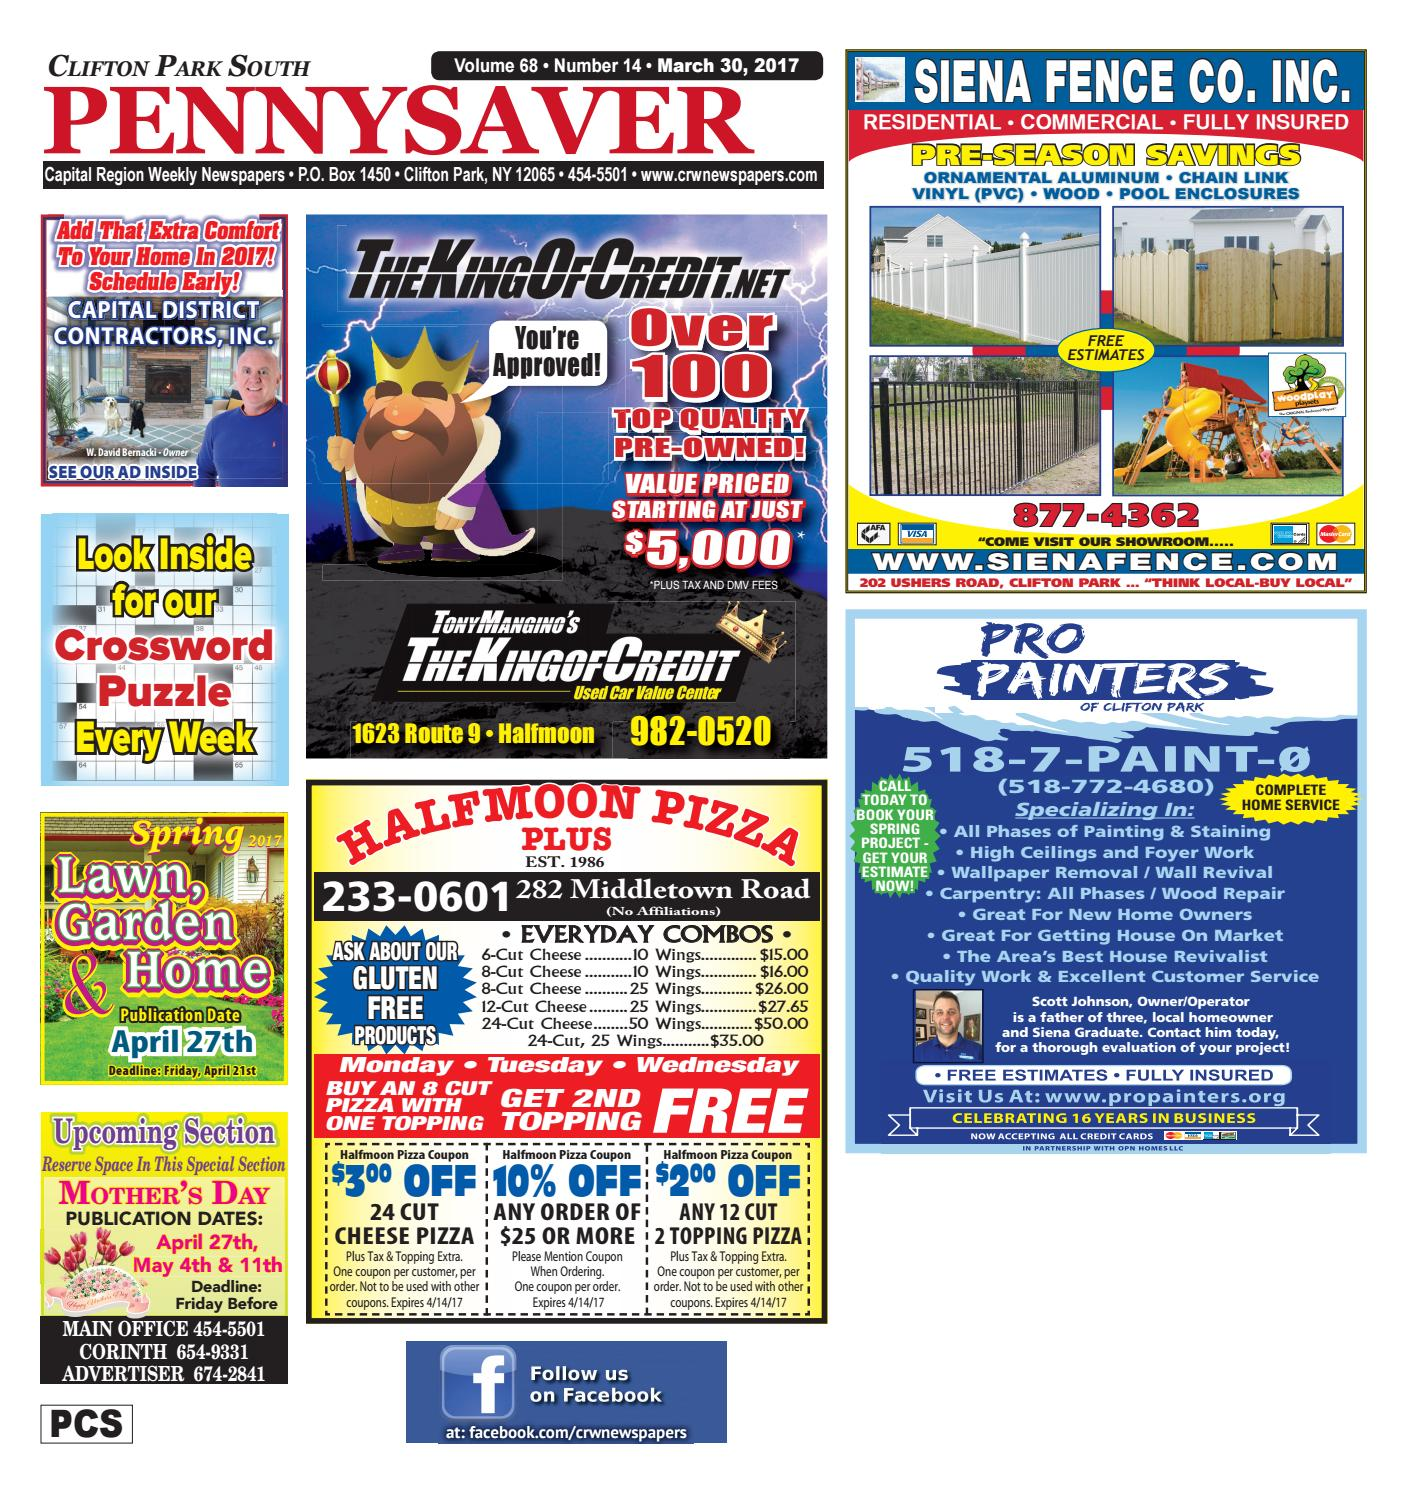 Clifton Park South Pennysaver 033017 by Capital Region